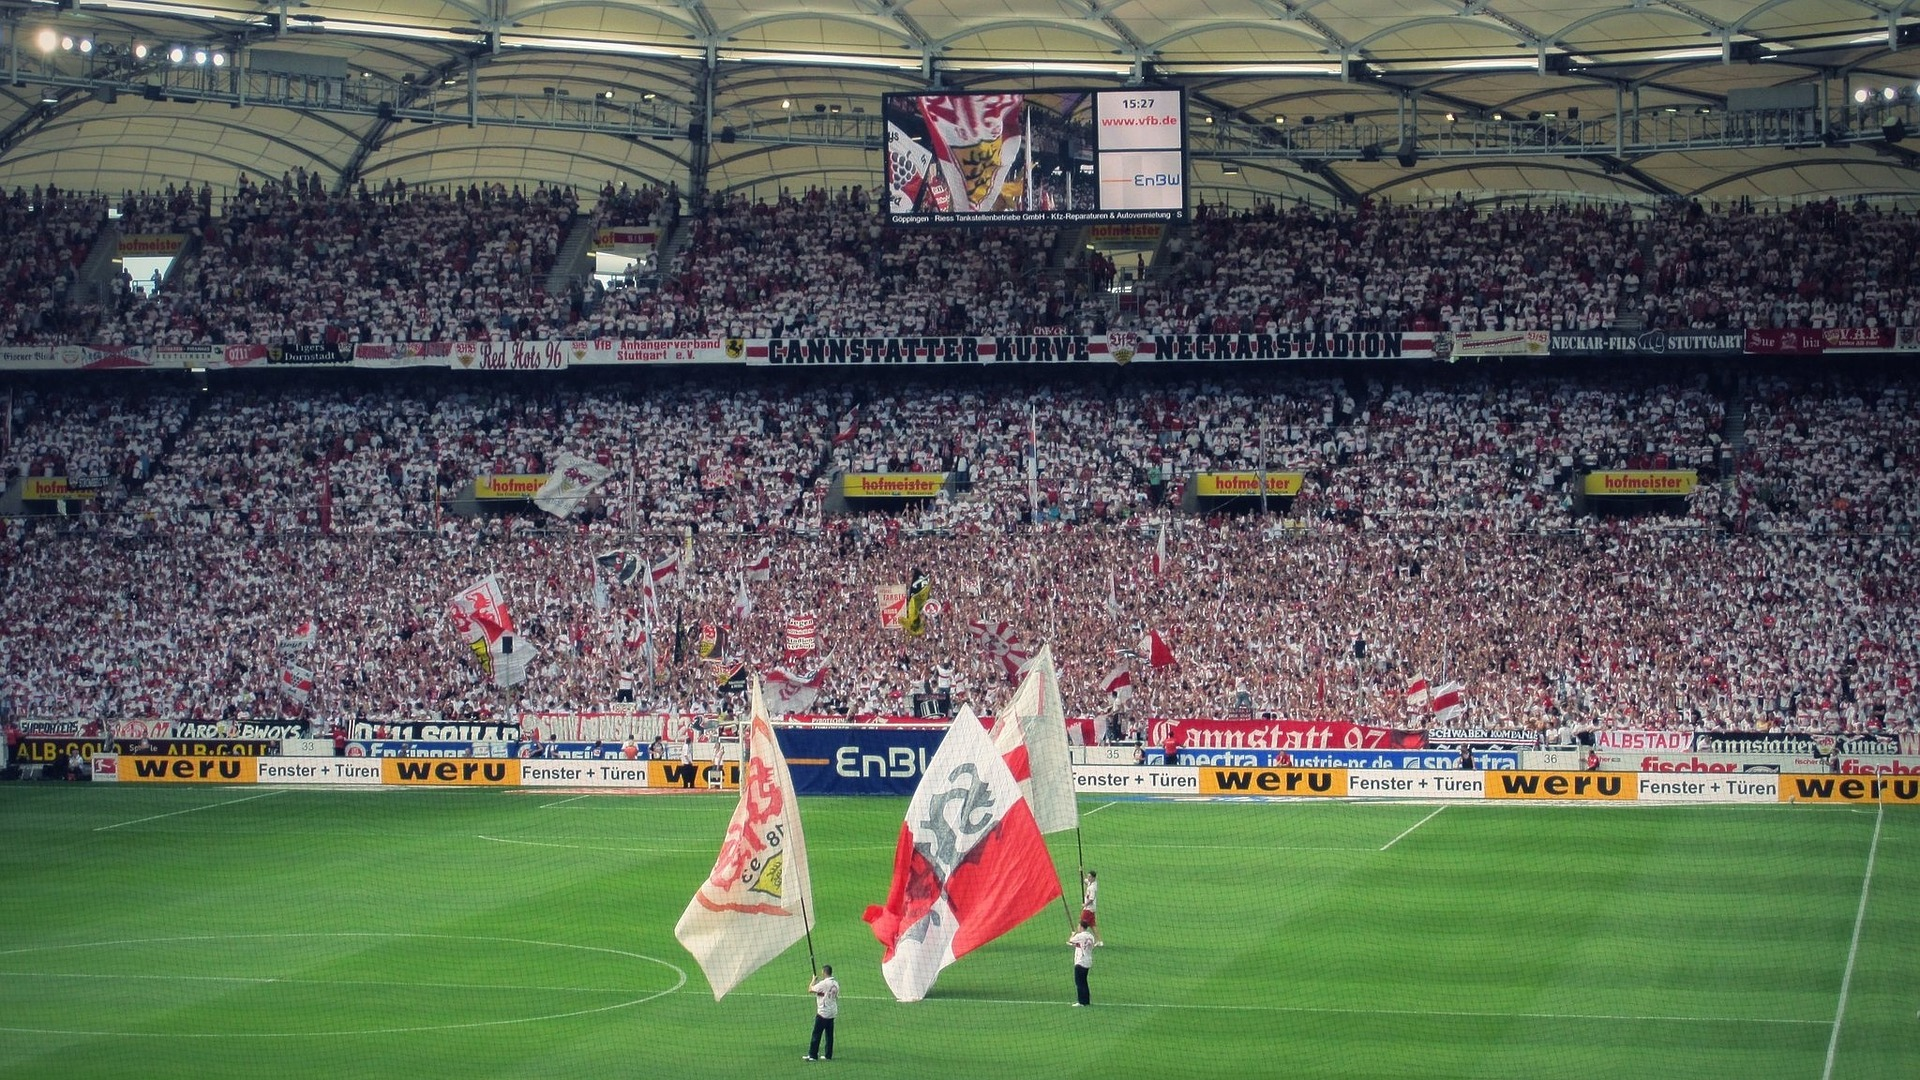 Mercedes Benz Arena in Stuttgart - Bundesliga